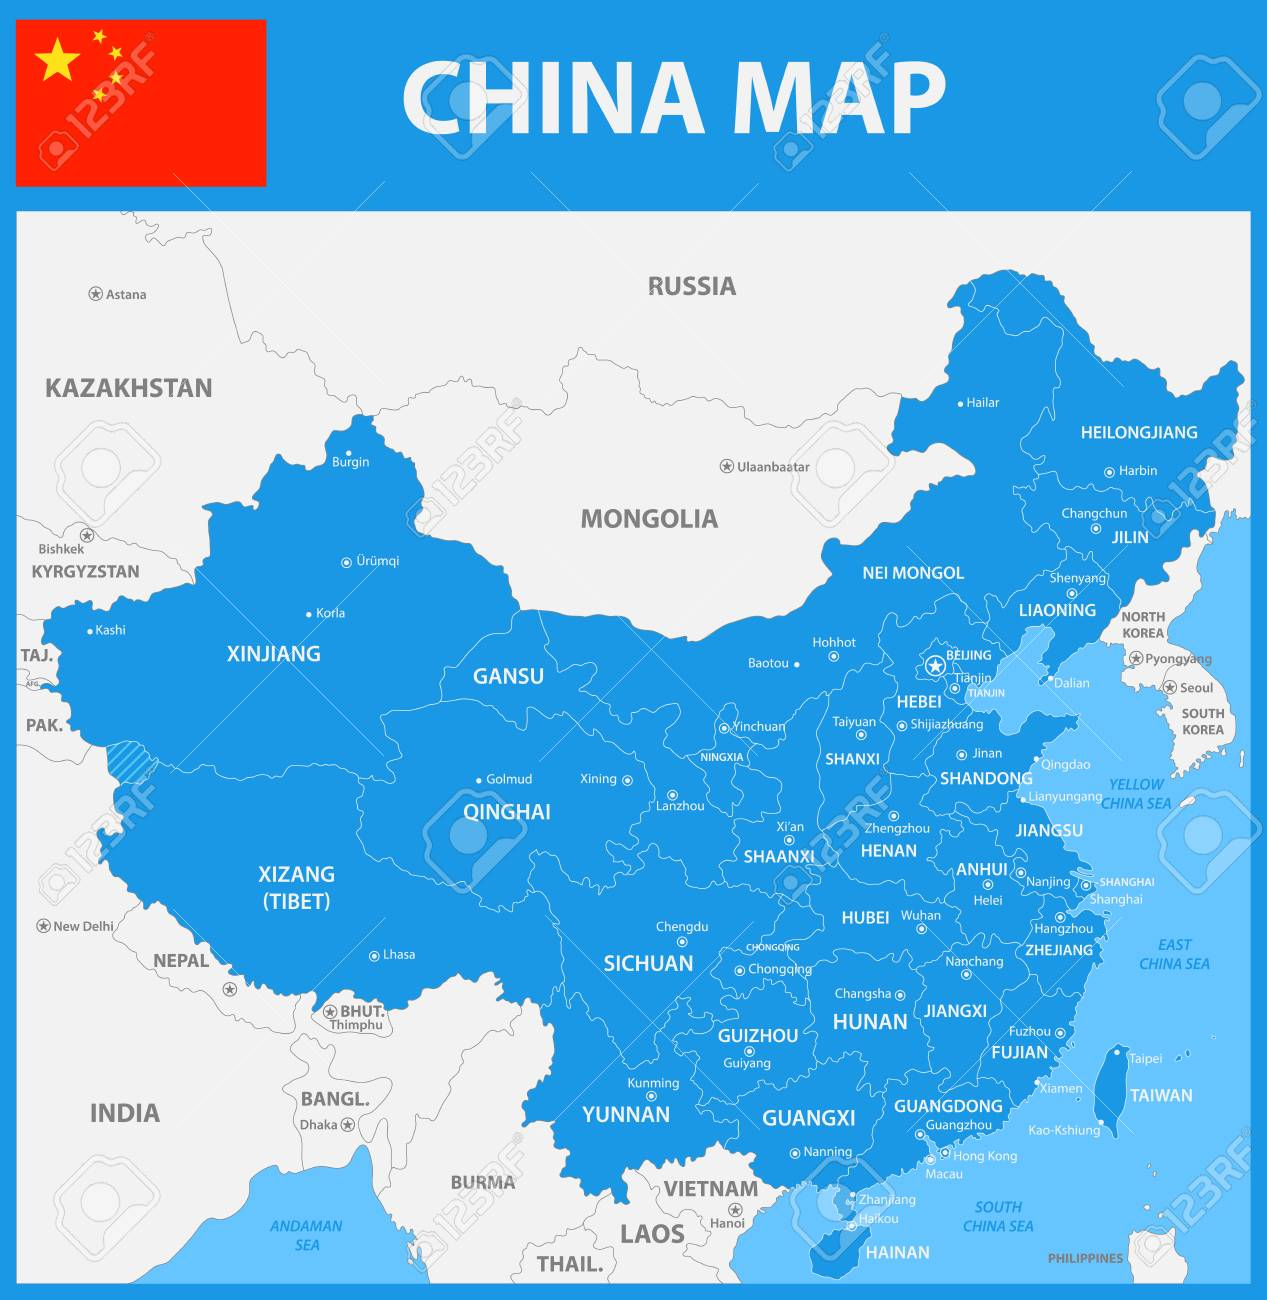 Regions Of China Map.The Detailed Map Of China With Regions Or States And Cities